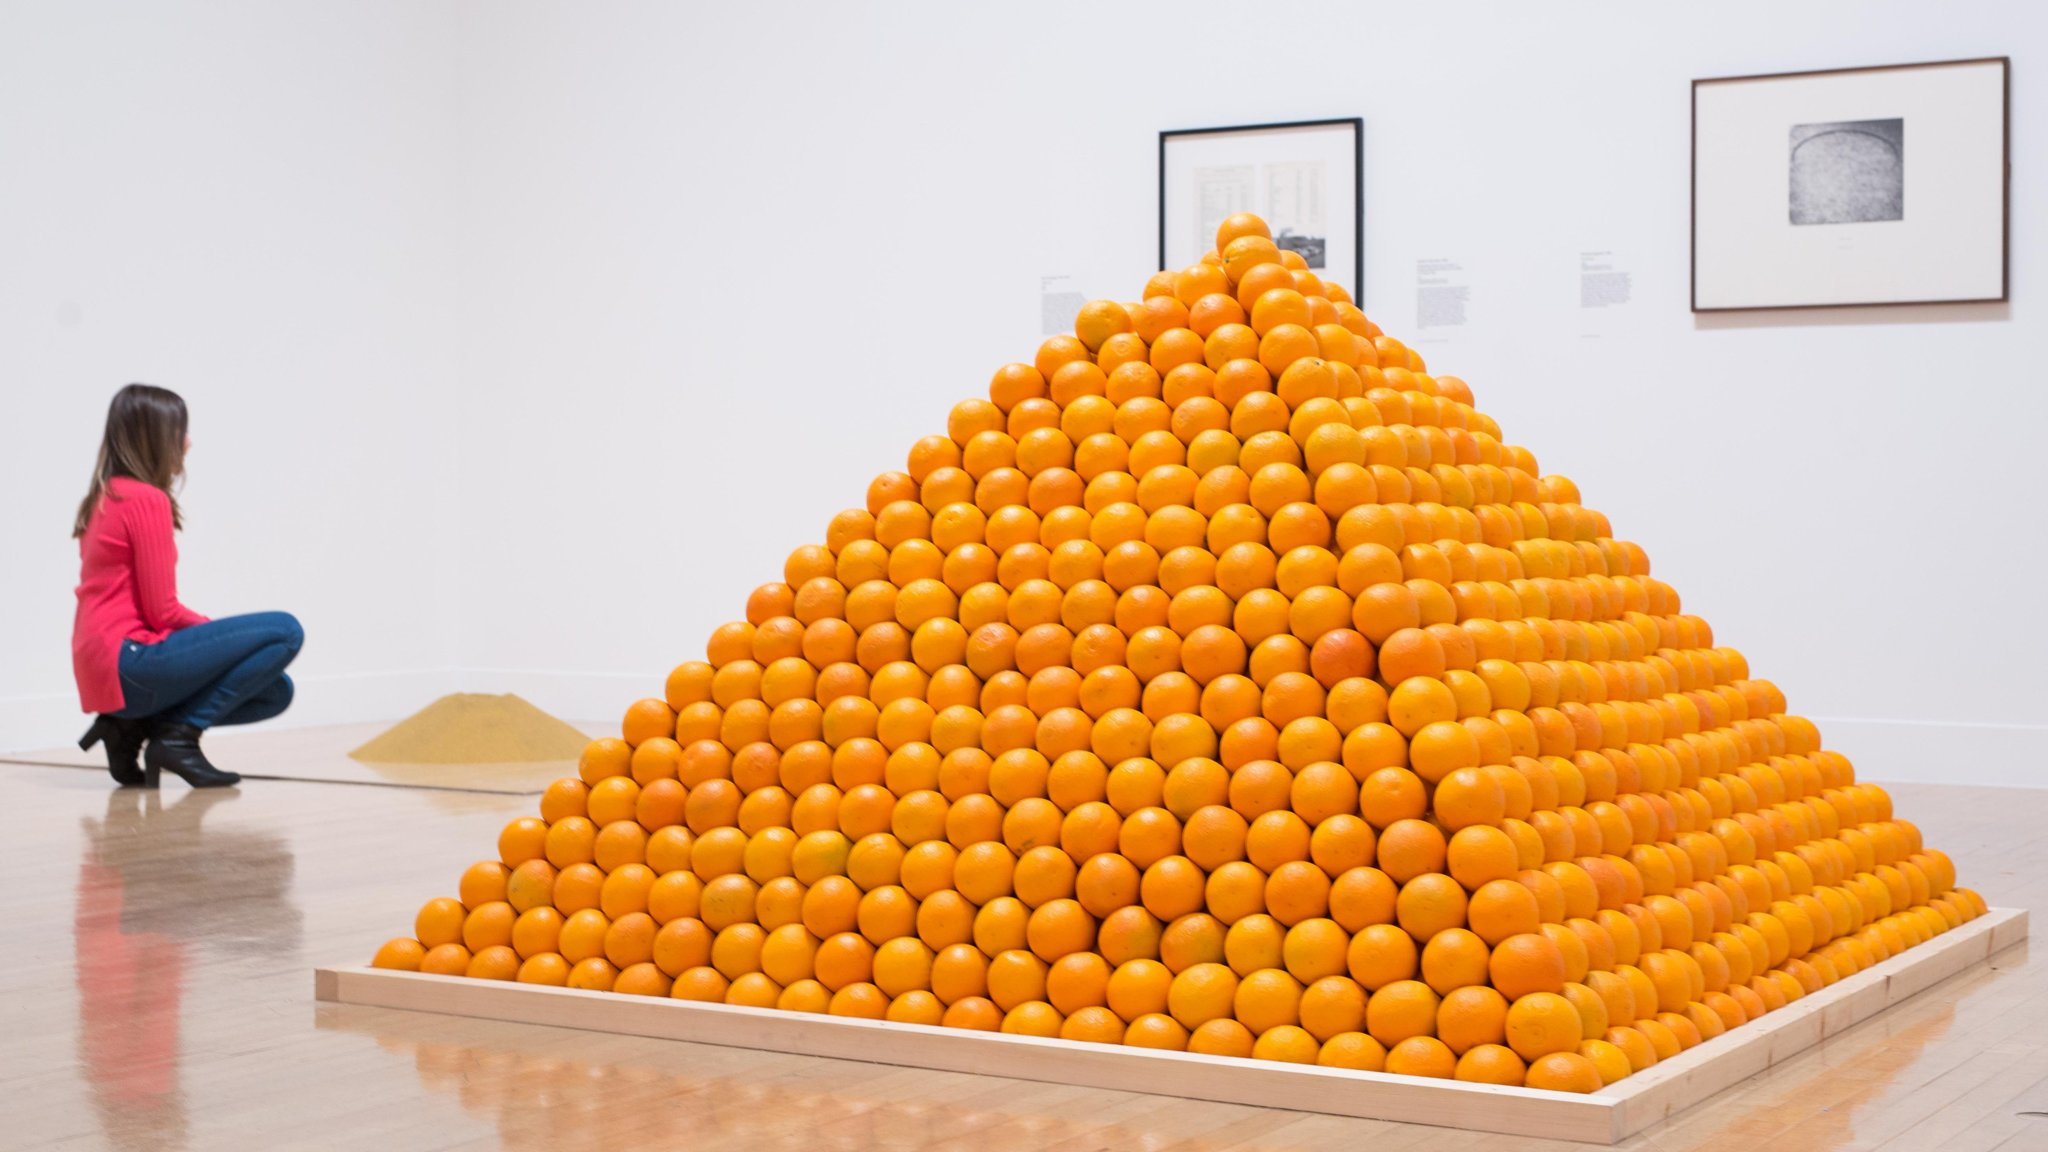 Glass of water and a pile of oranges: conceptual art on show